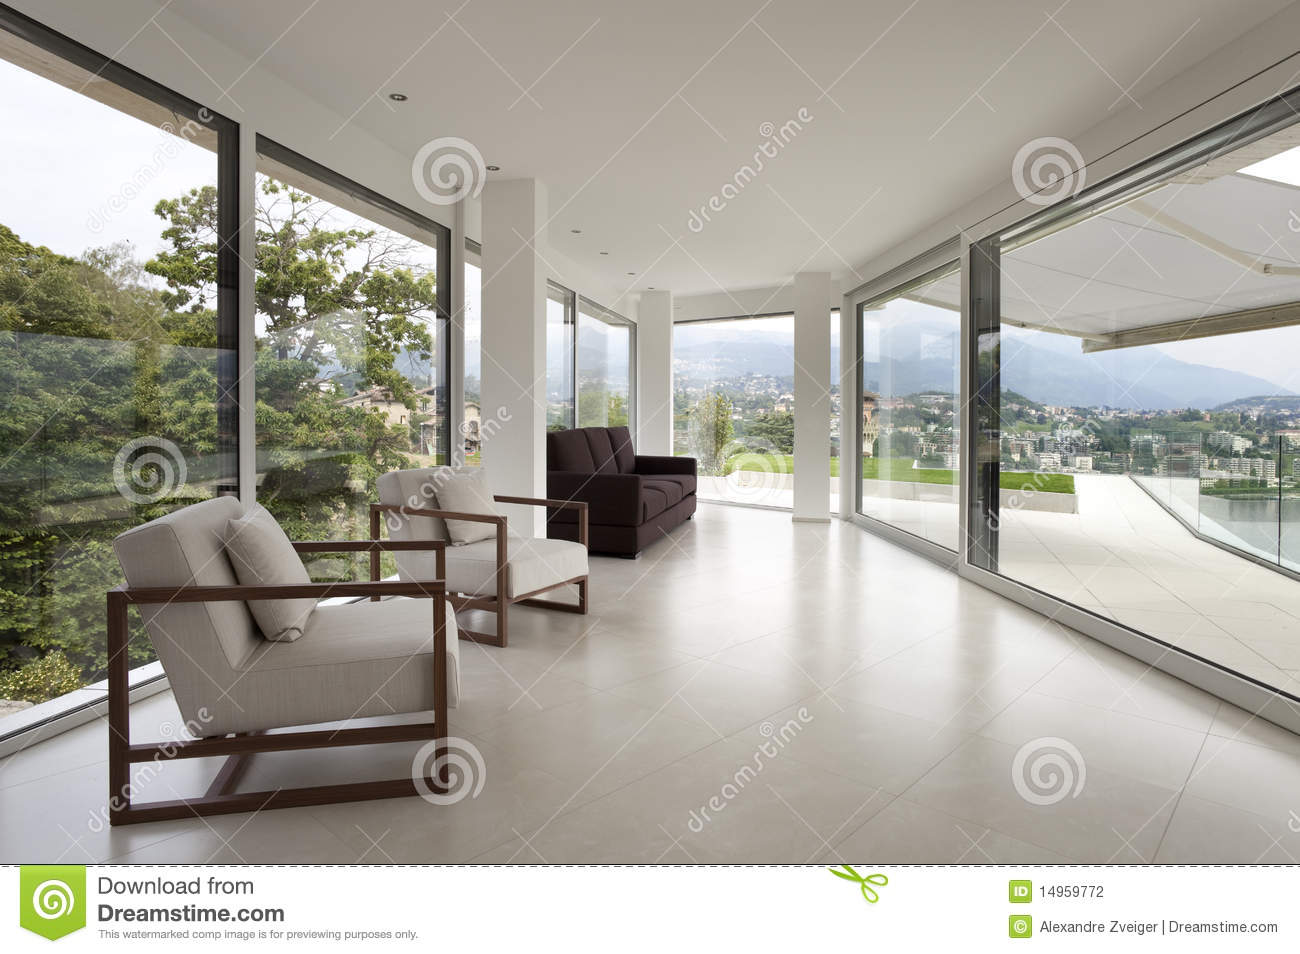 Bel int rieur d 39 une maison moderne photographie stock for Photo dinterieur de maison moderne